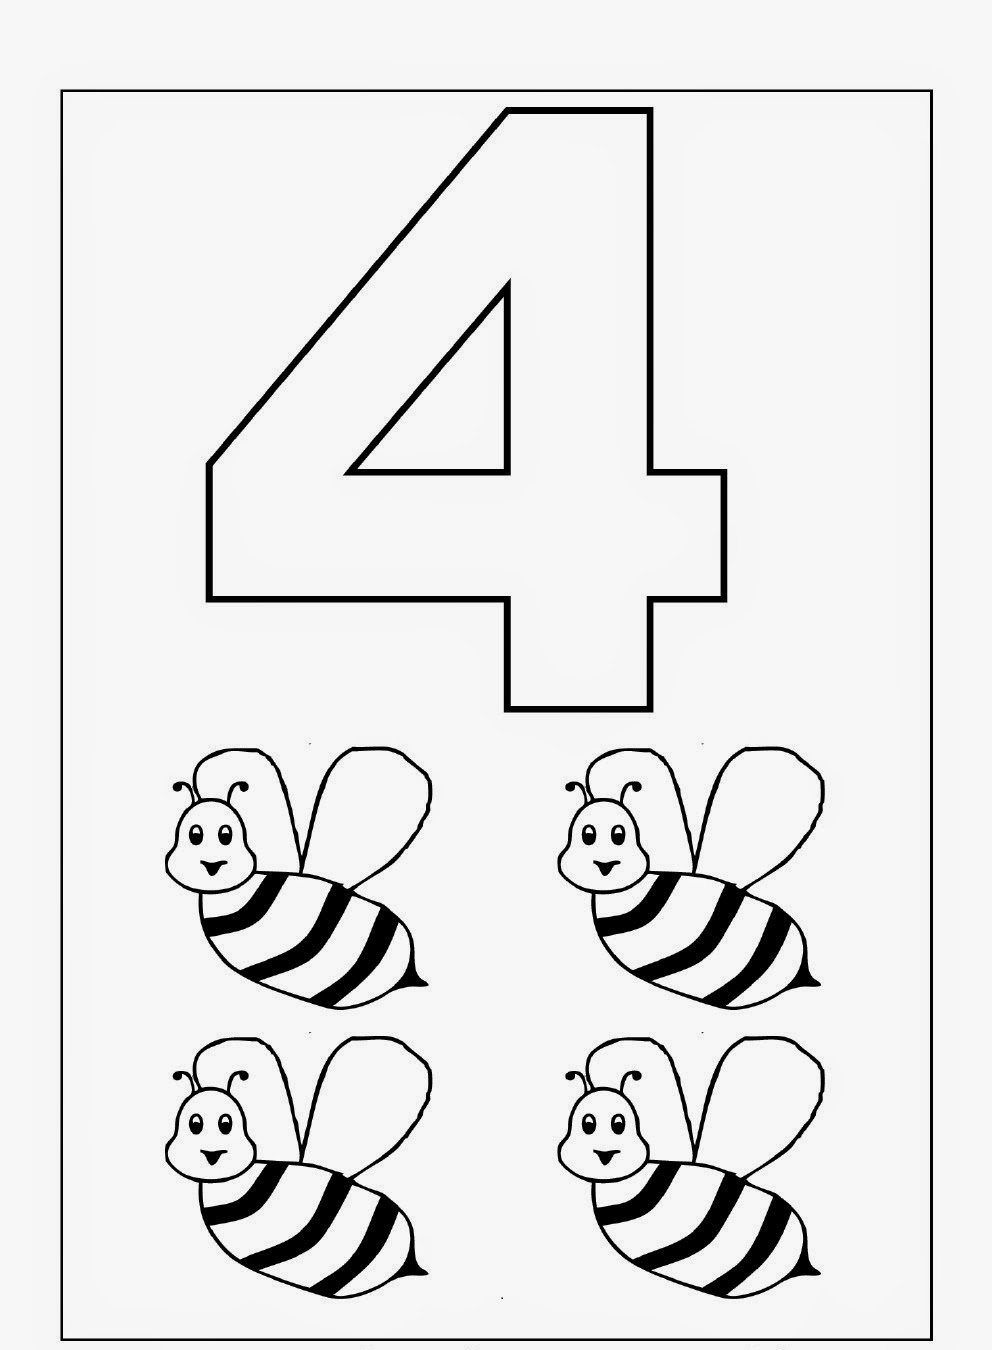 Kindergarten Worksheets: Coloring Worksheets - Maths 1-10 | number coloring pages for kindergarten